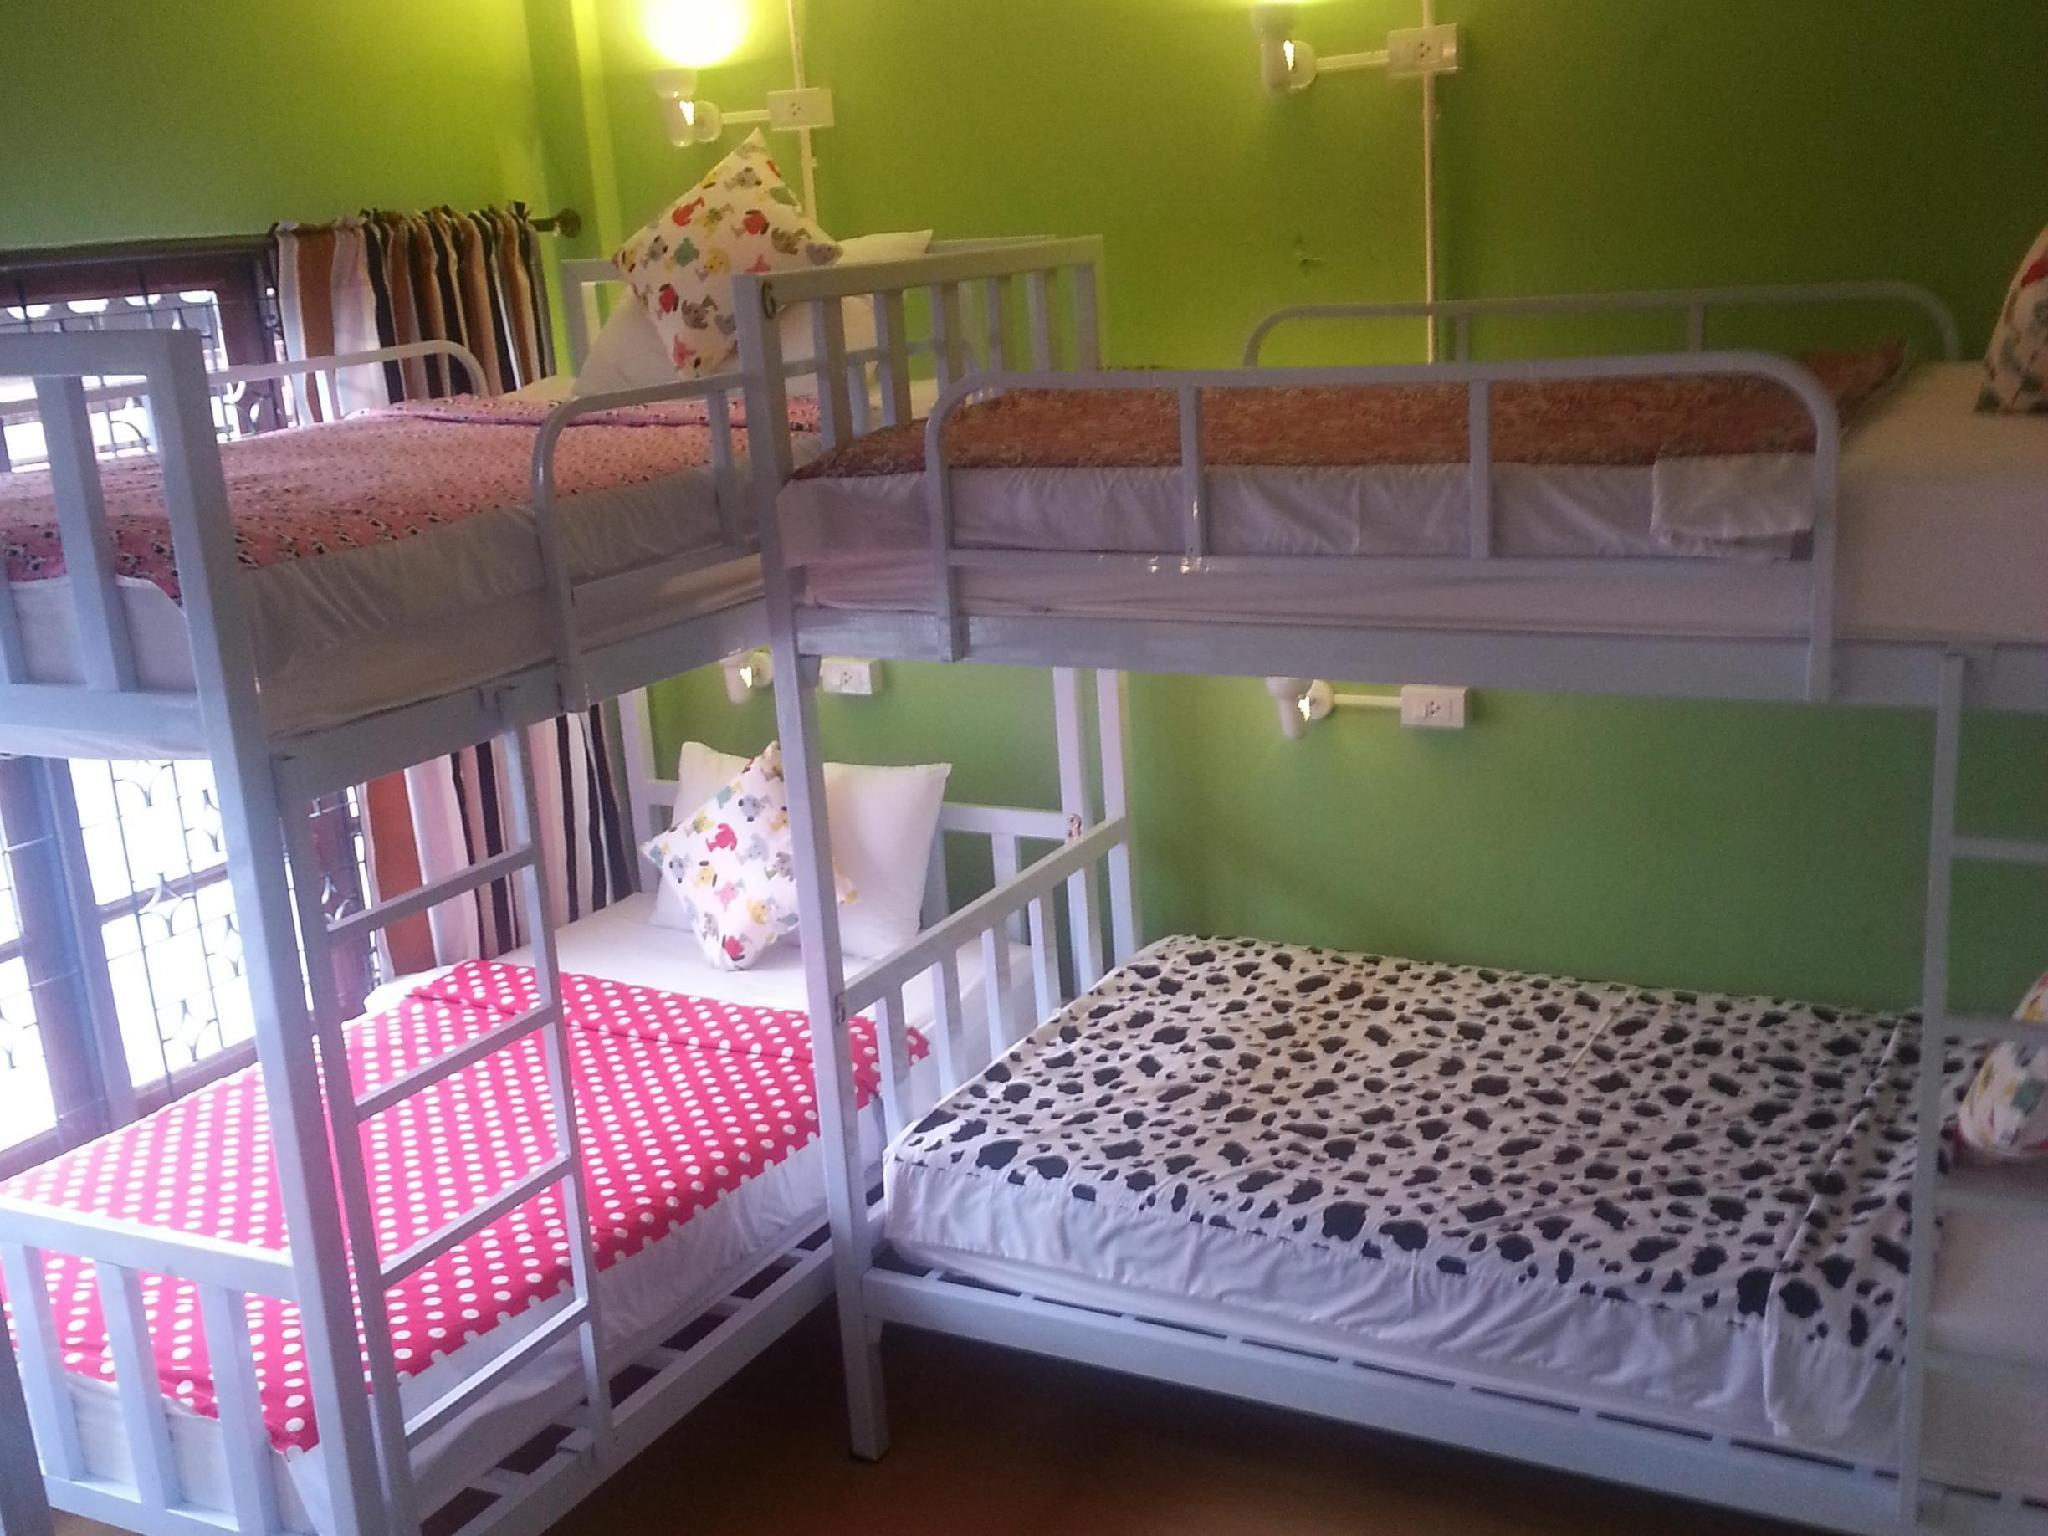 Pograd postelje za 6 (Bunk Beds For 6)